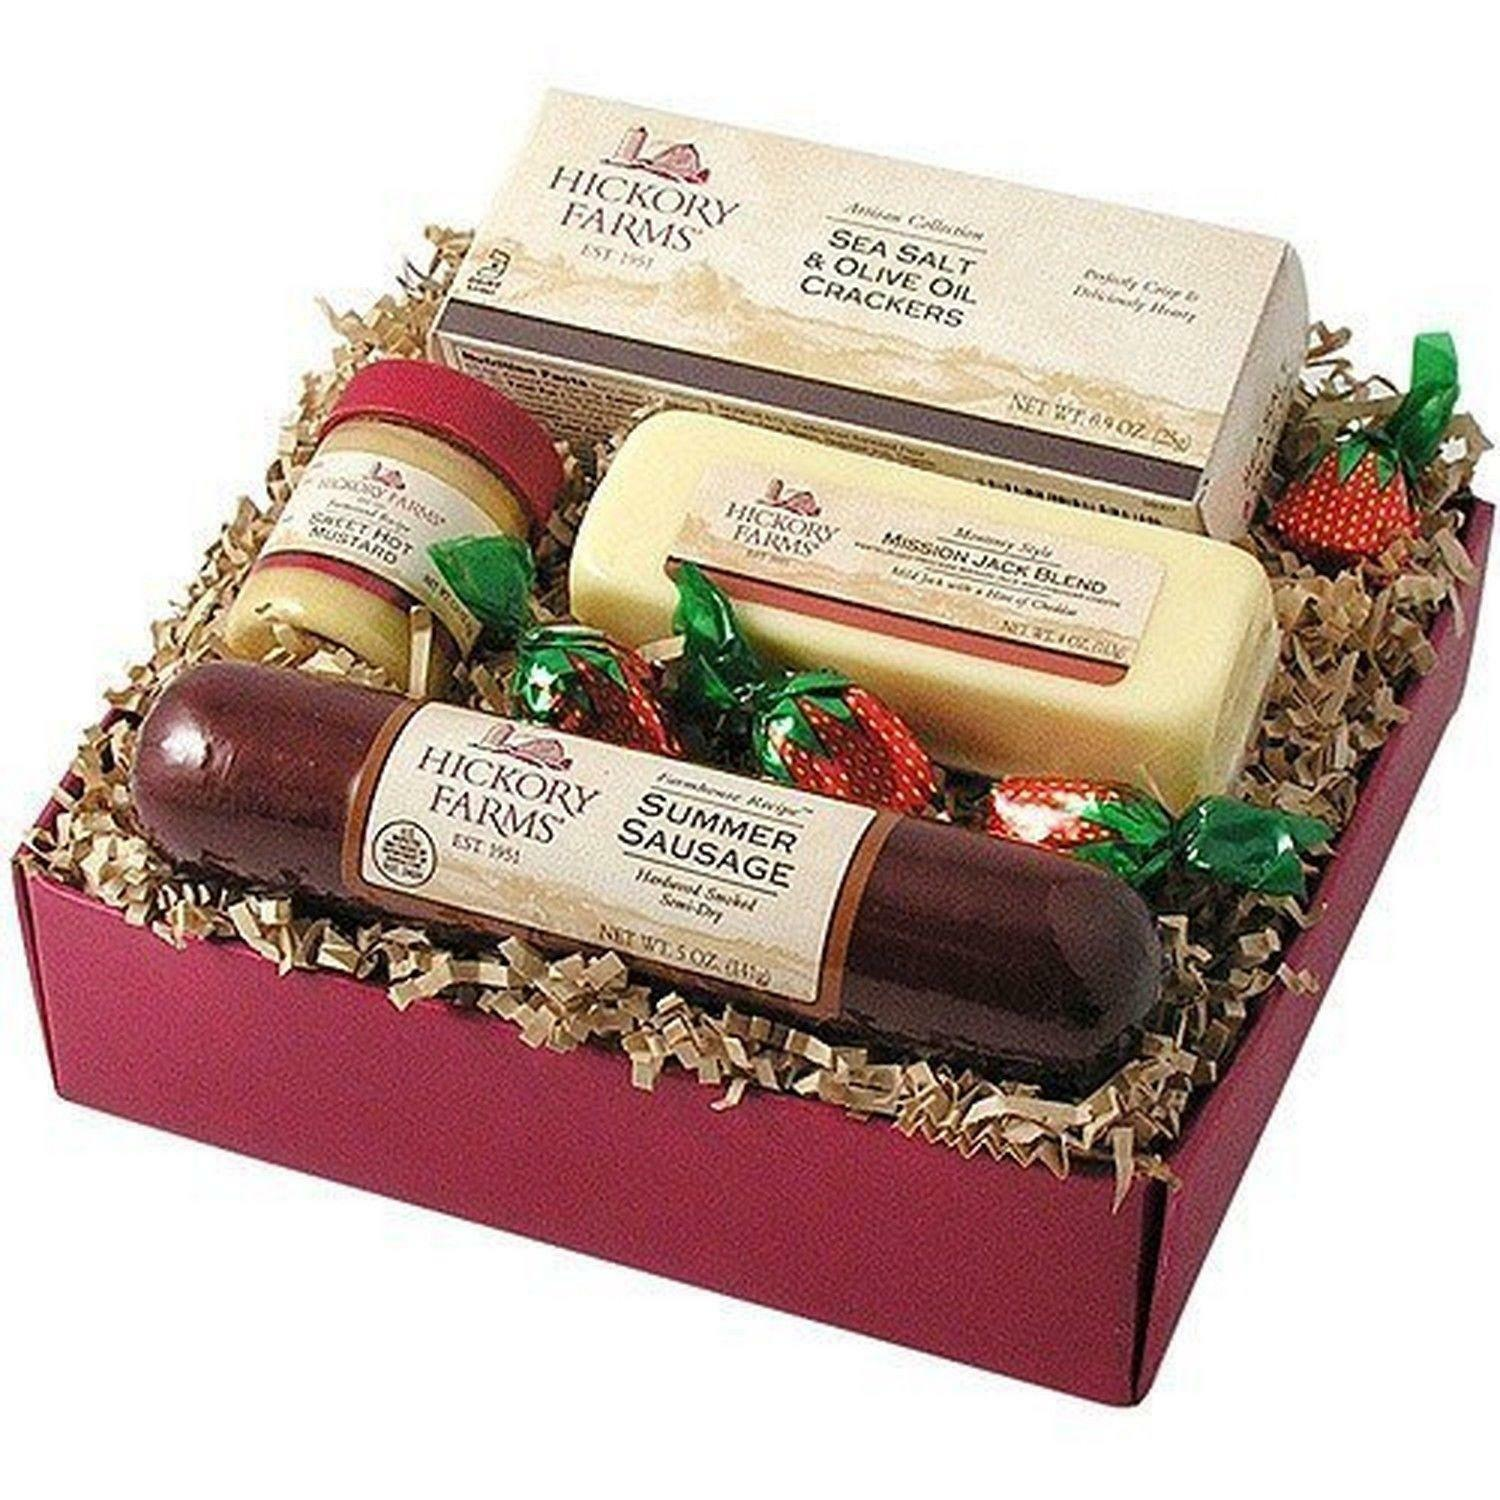 Hickory Farms 4 PC Farmhouse Sausage & Cheese Sampler Holiday Gift ...